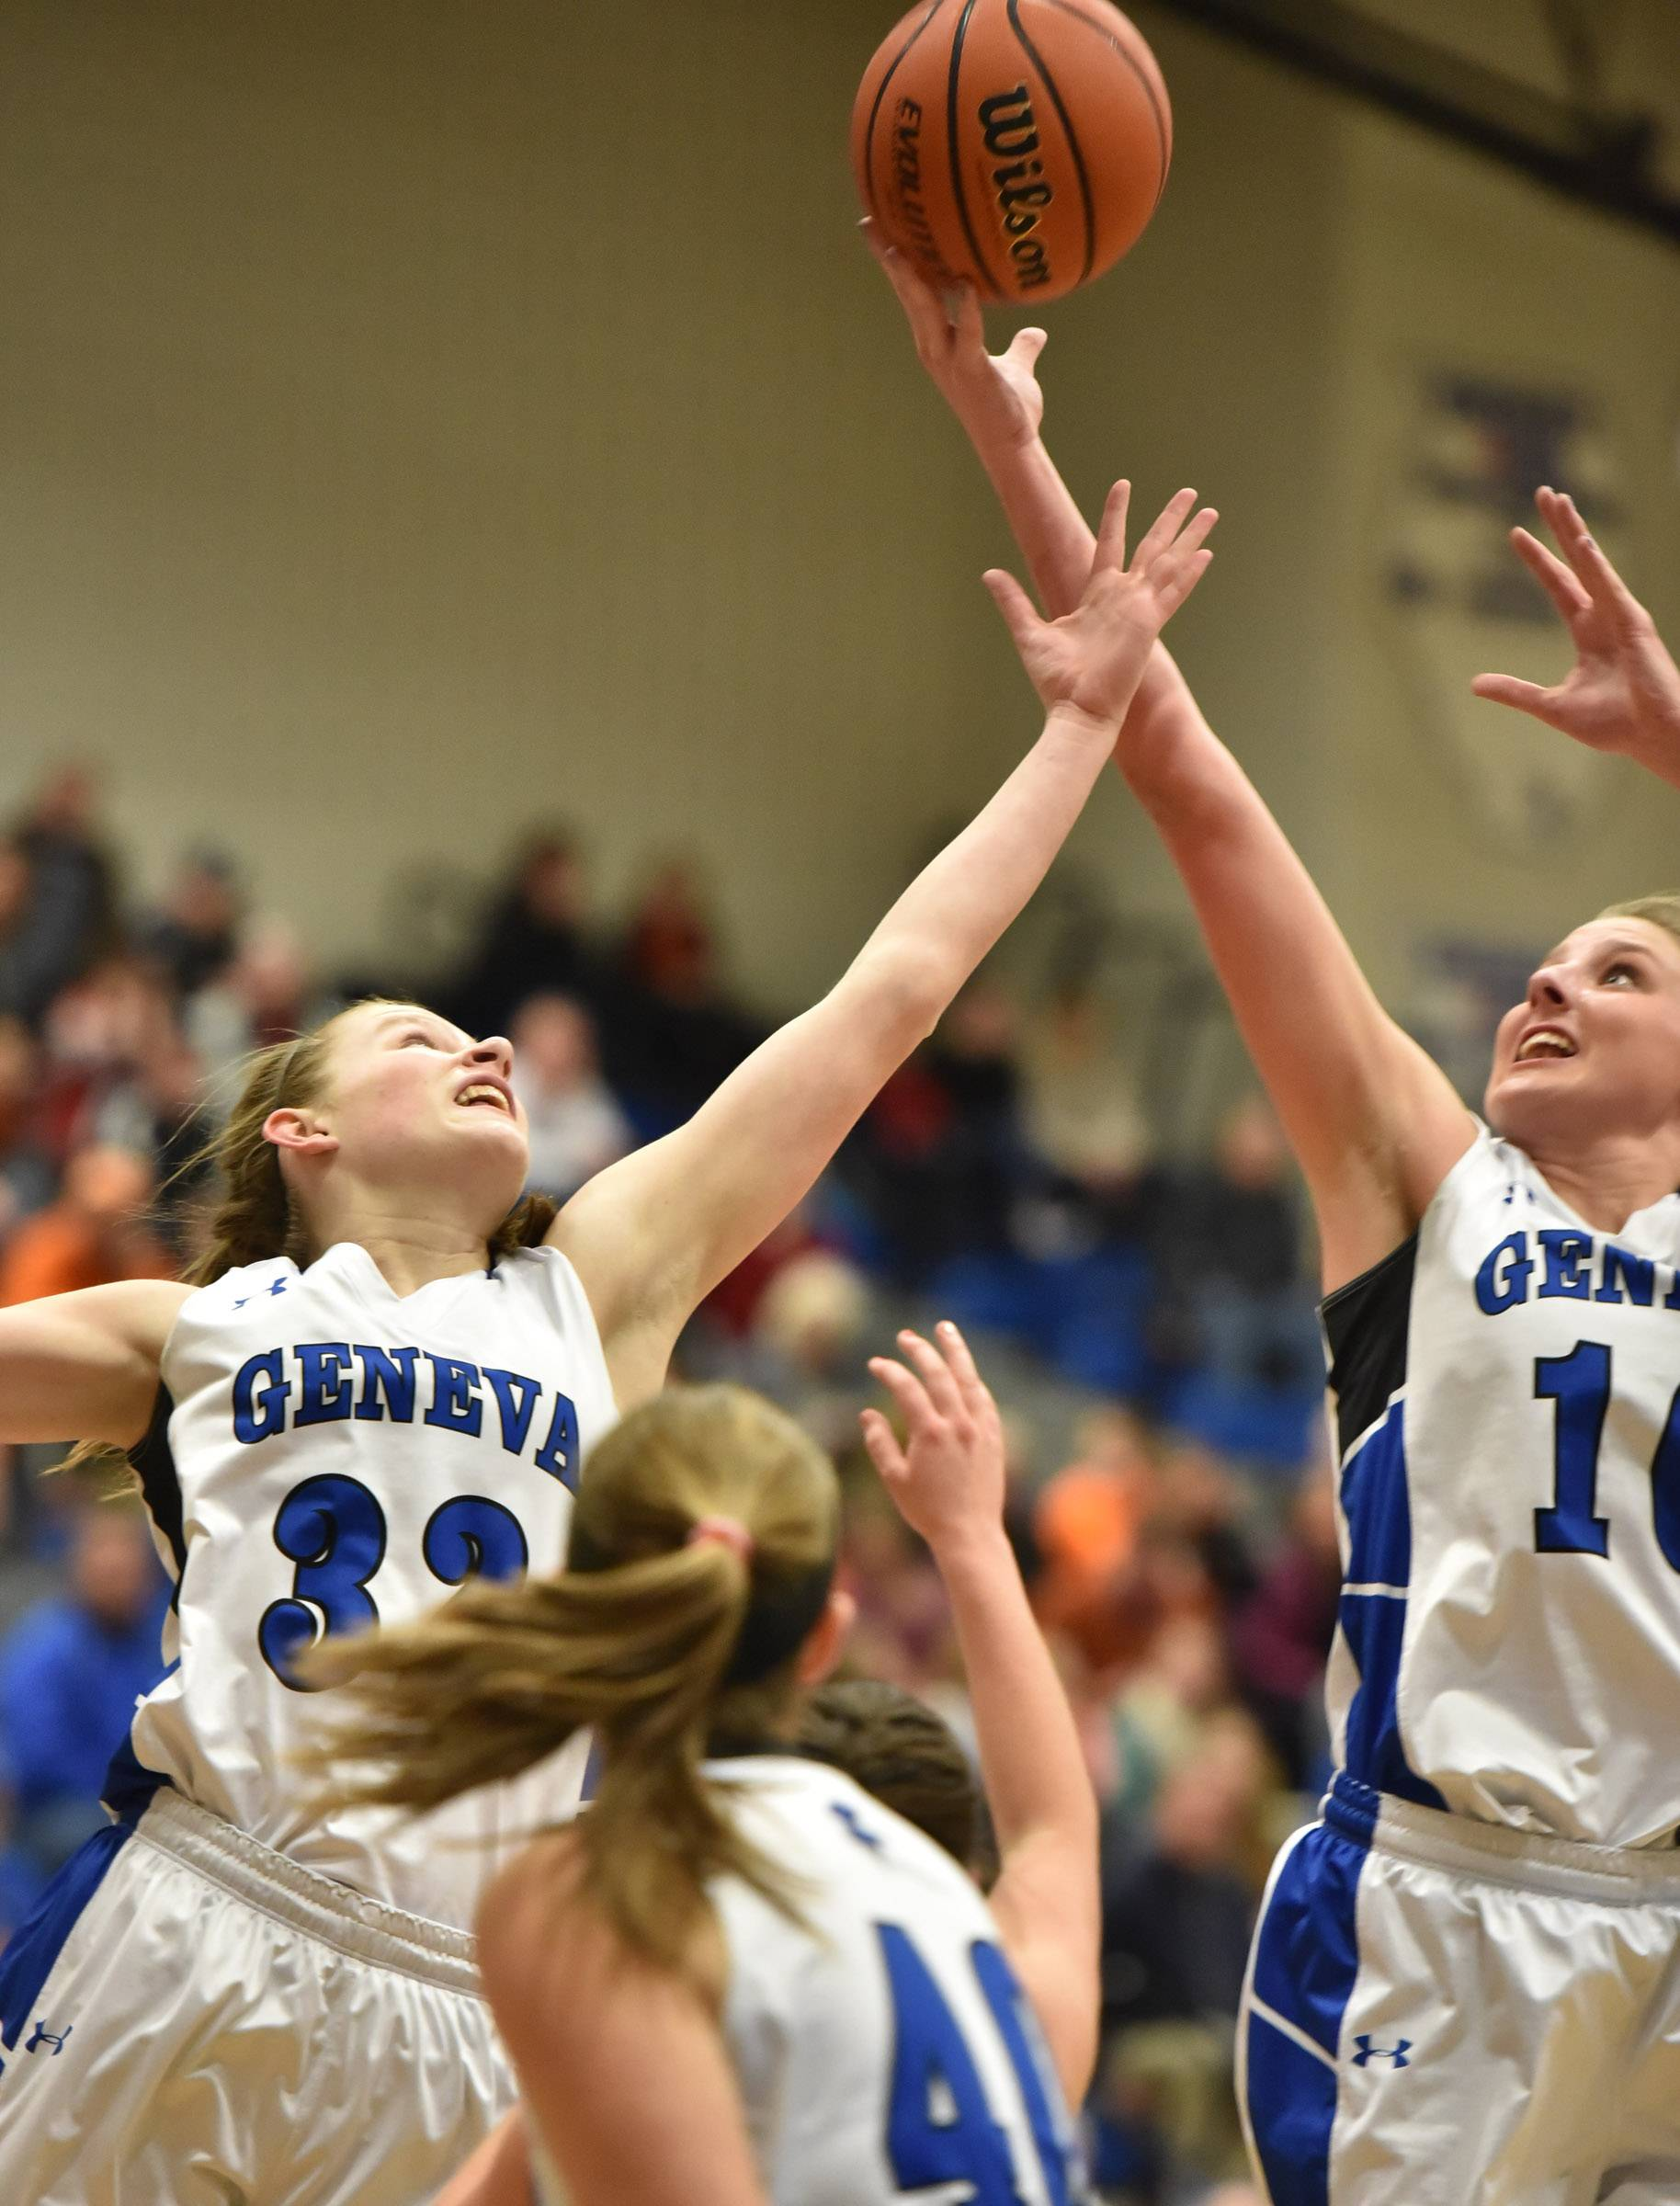 Geneva teammates Madison Mallory and Grace Loberg stretch for a rebound against St. Charles East Friday in Geneva.